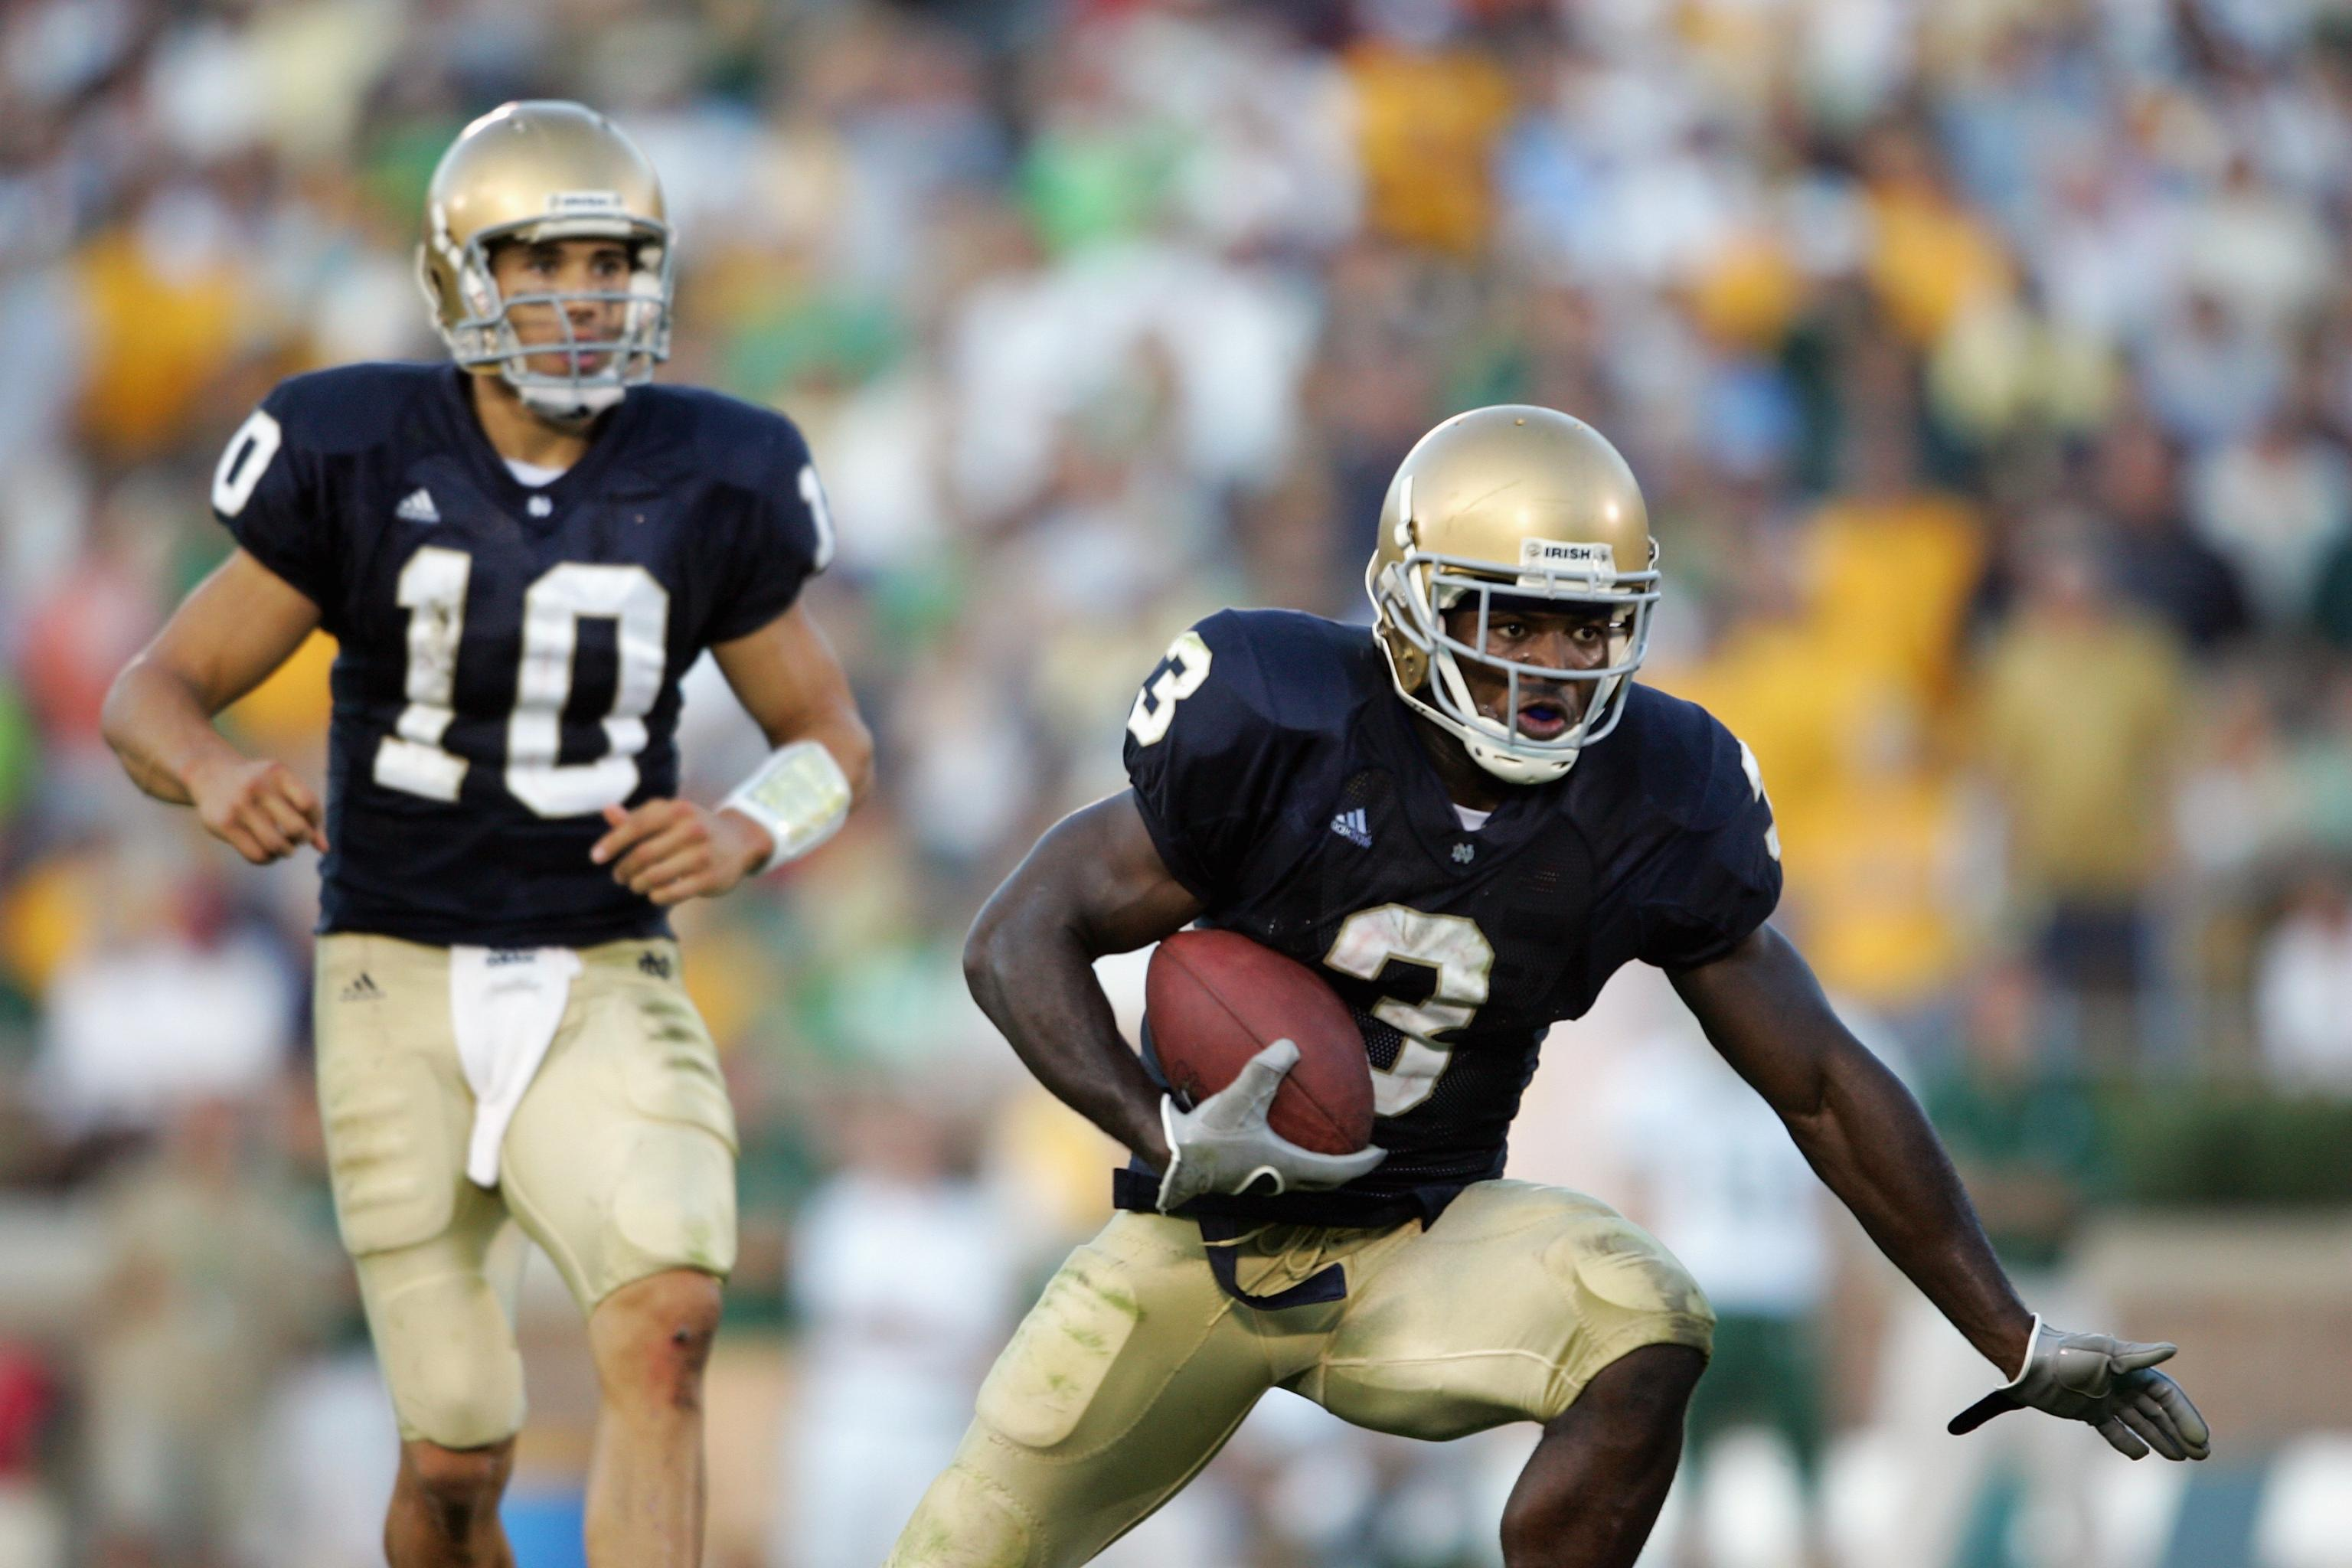 Notre Dame Football Comparing The Irish Offense To Charlie Weis Best Offense Bleacher Report Latest News Videos And Highlights